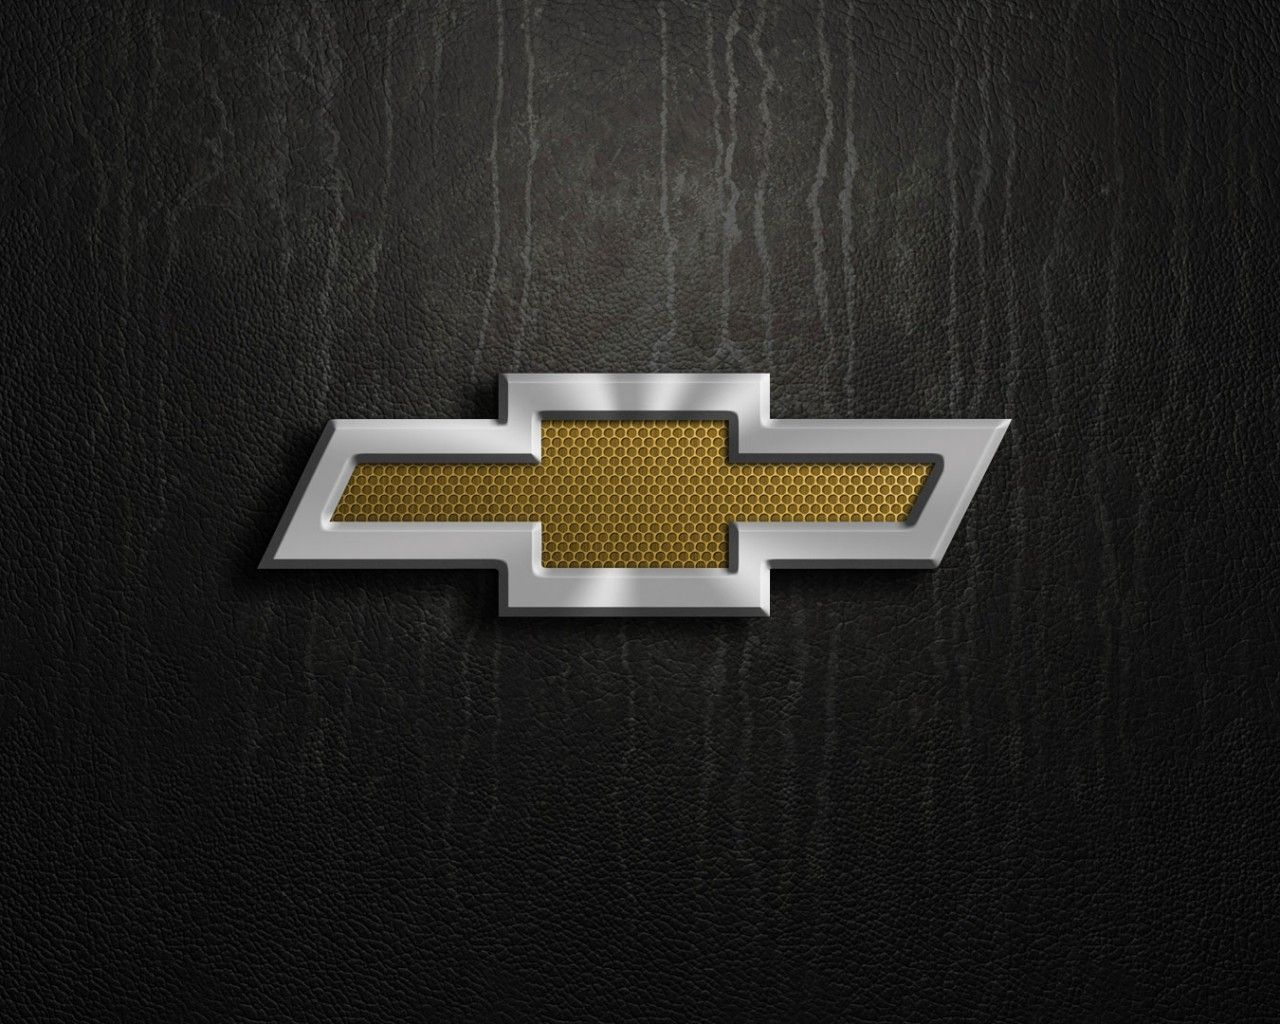 Chevy Wallpapers - Top Free Chevy